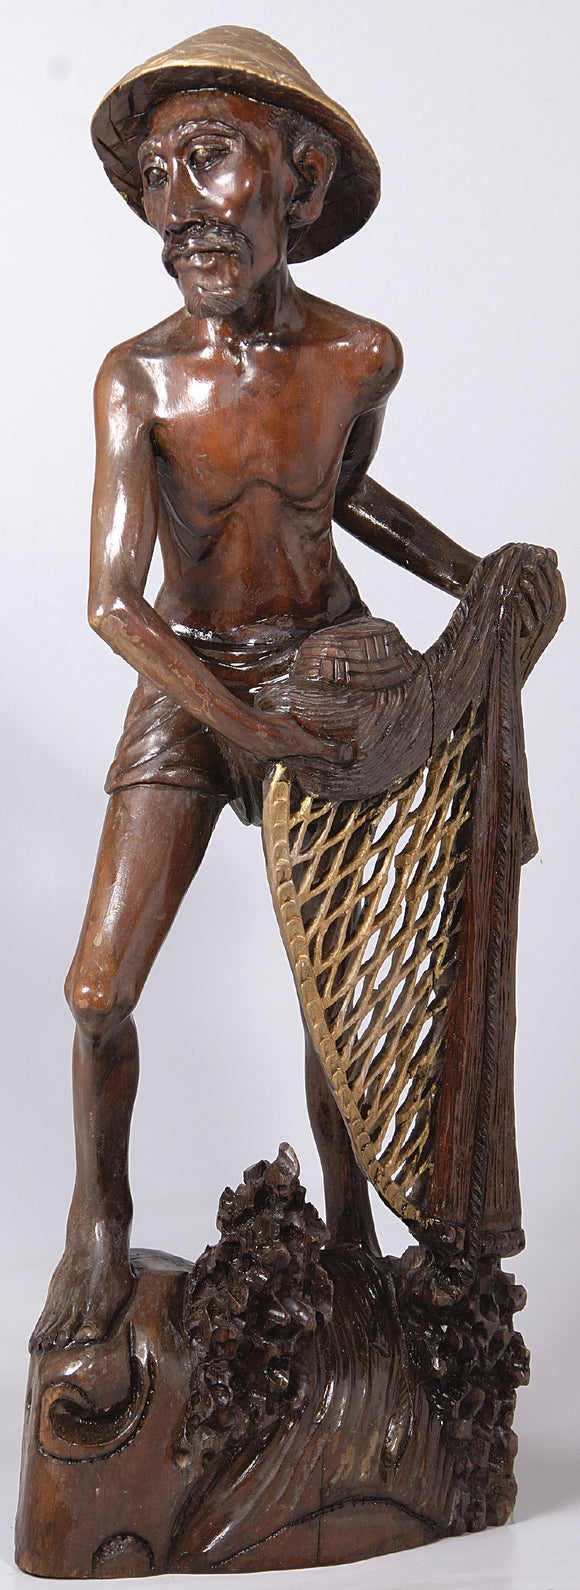 Burmese Teakwood sculpture of fisherman